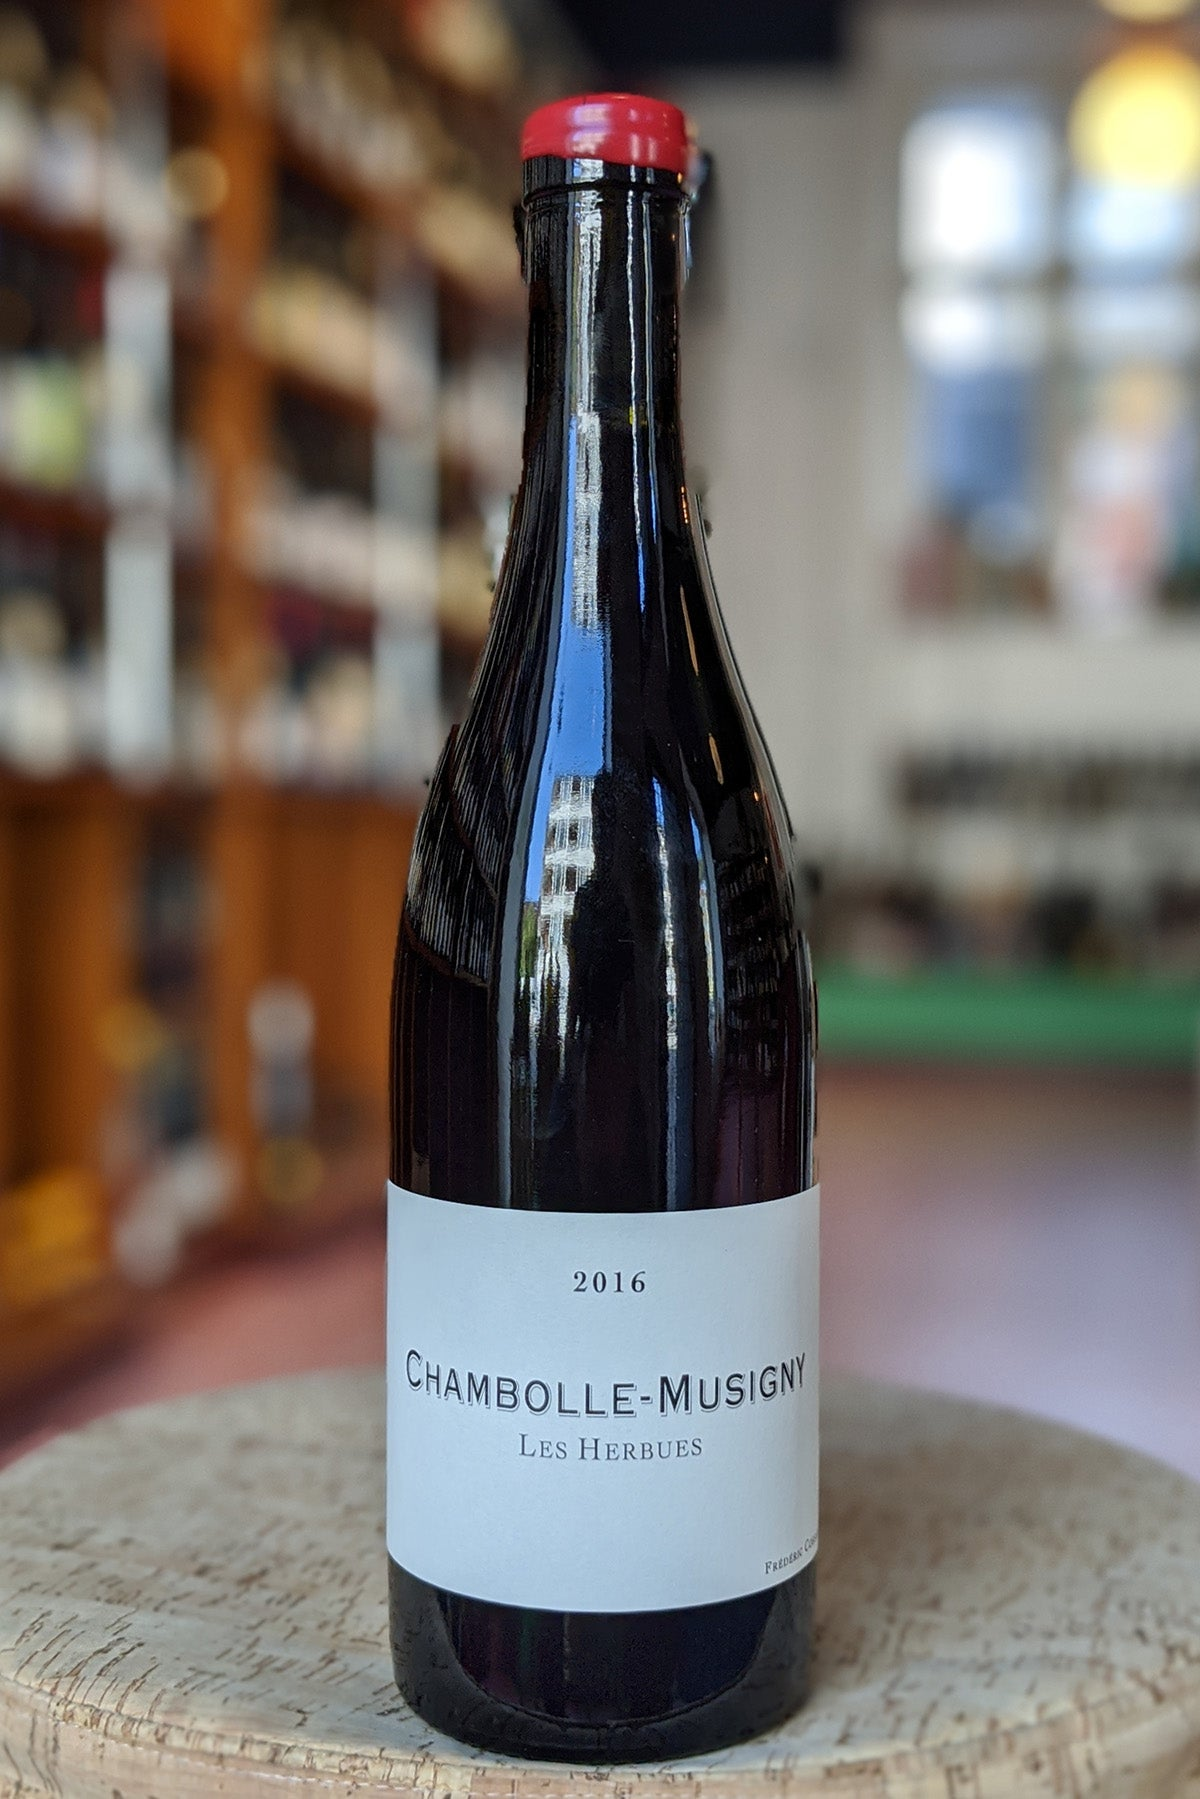 Chambolle-Musigny Les Herbues